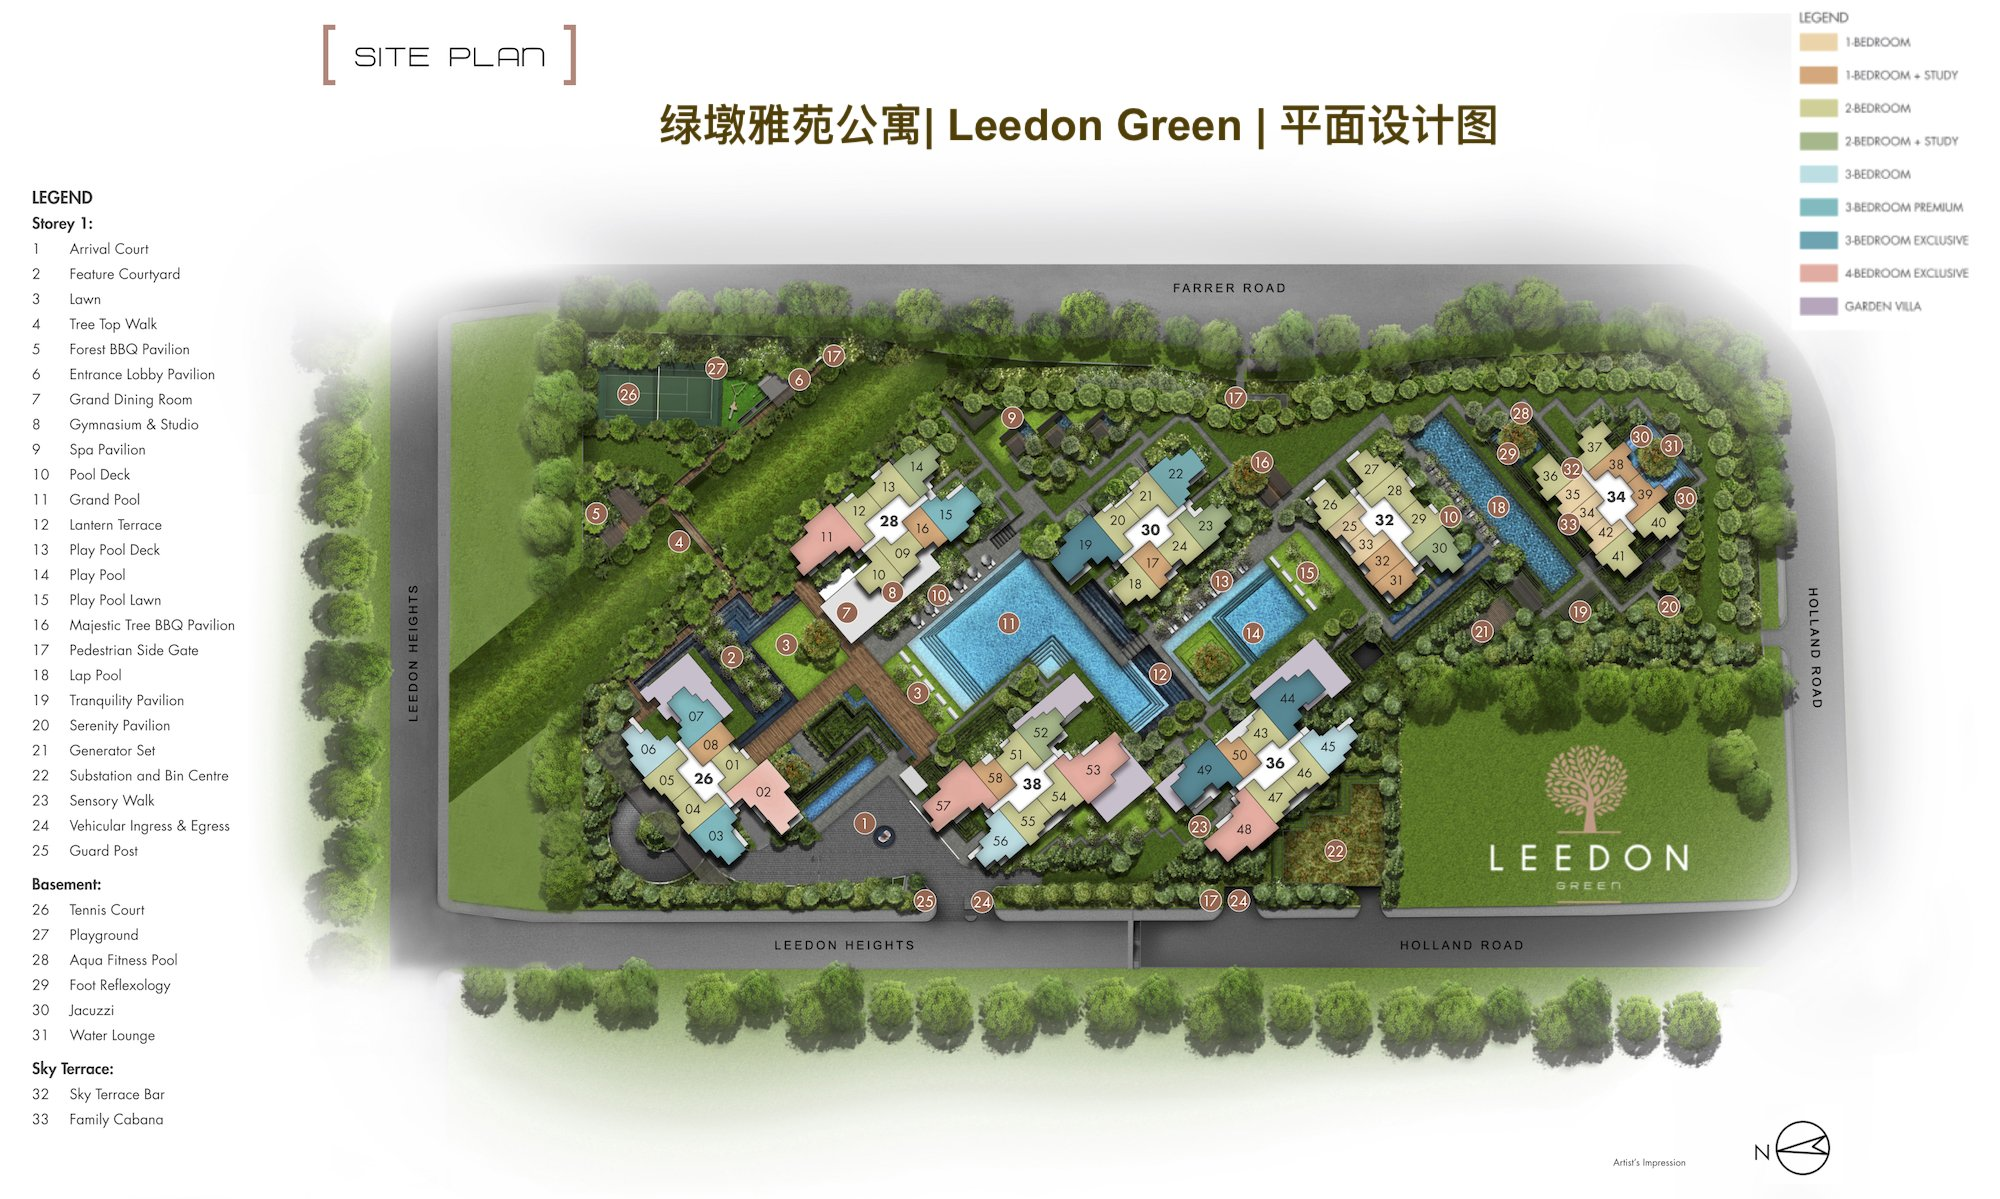 绿墩雅苑公寓平面设计图 Leedon Green site plan with unit mix